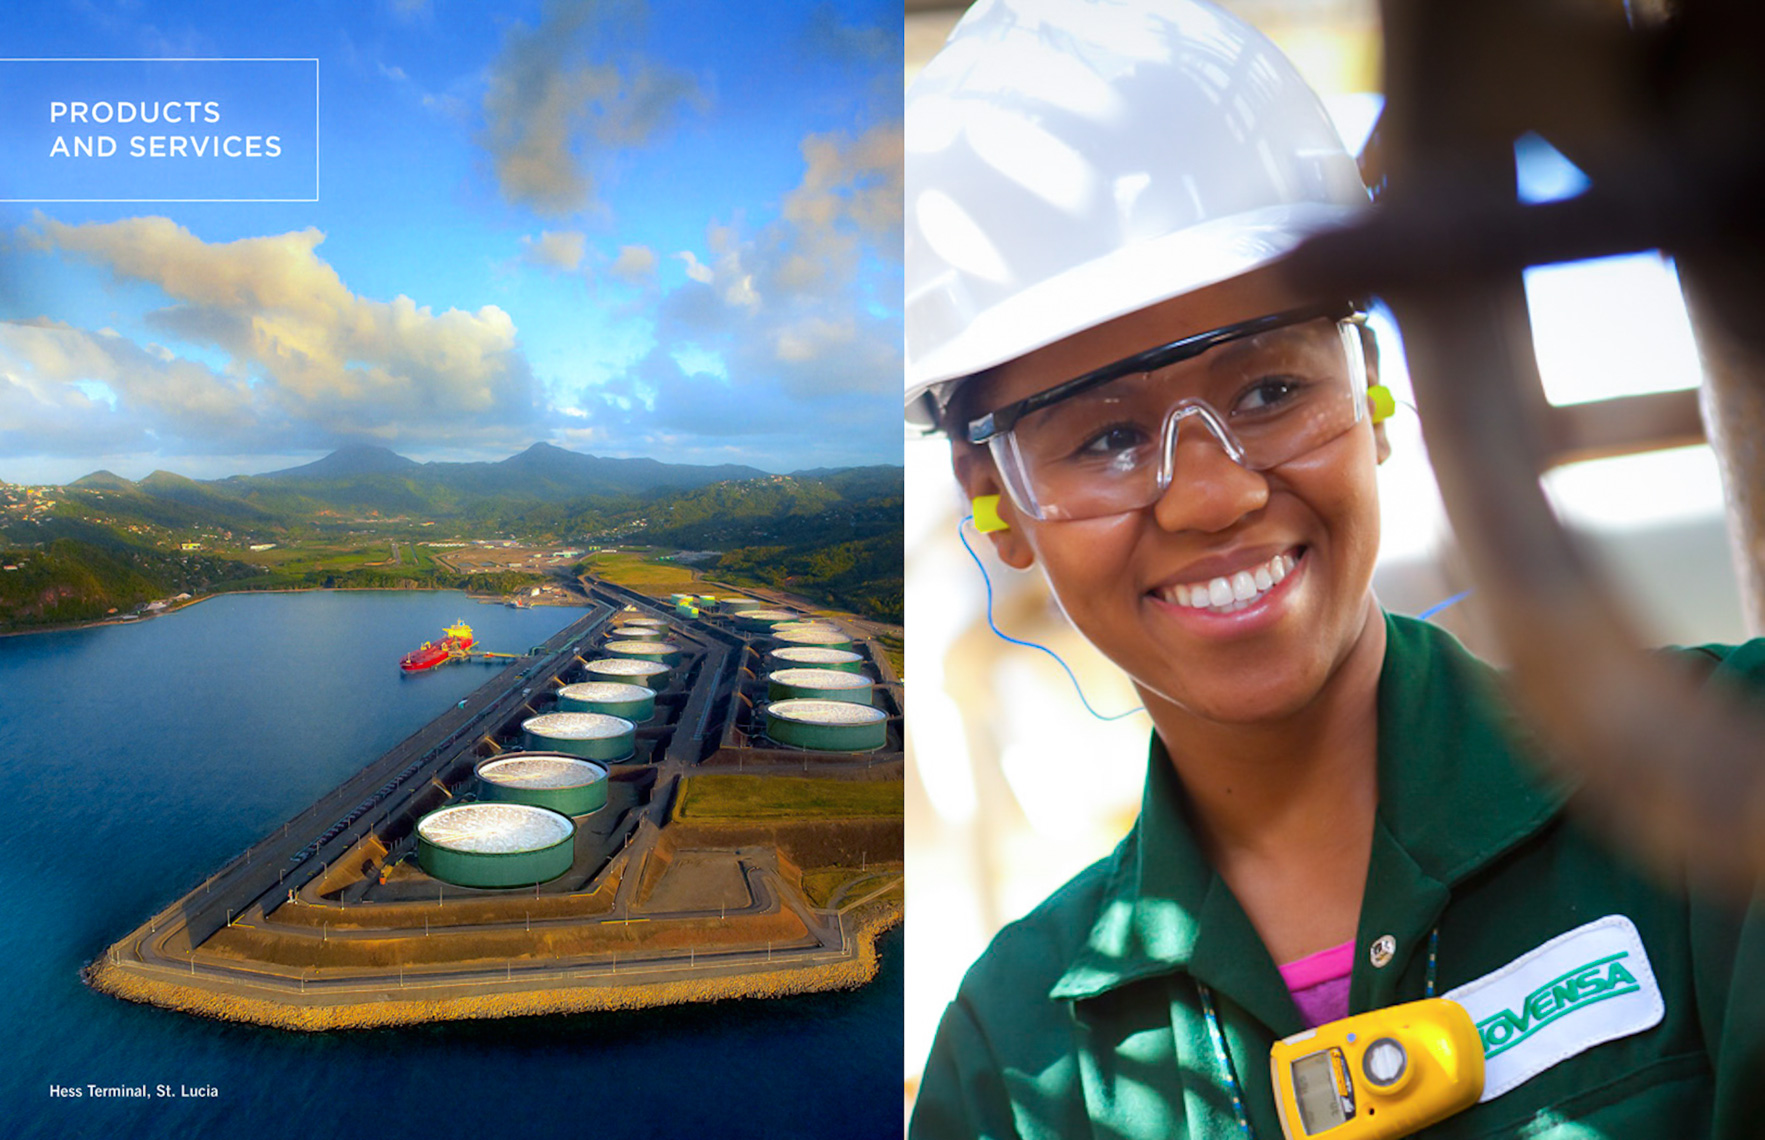 HESS Corporation facility in St. Lucia, BVI was shot for corporate reporting for Inc  Design.